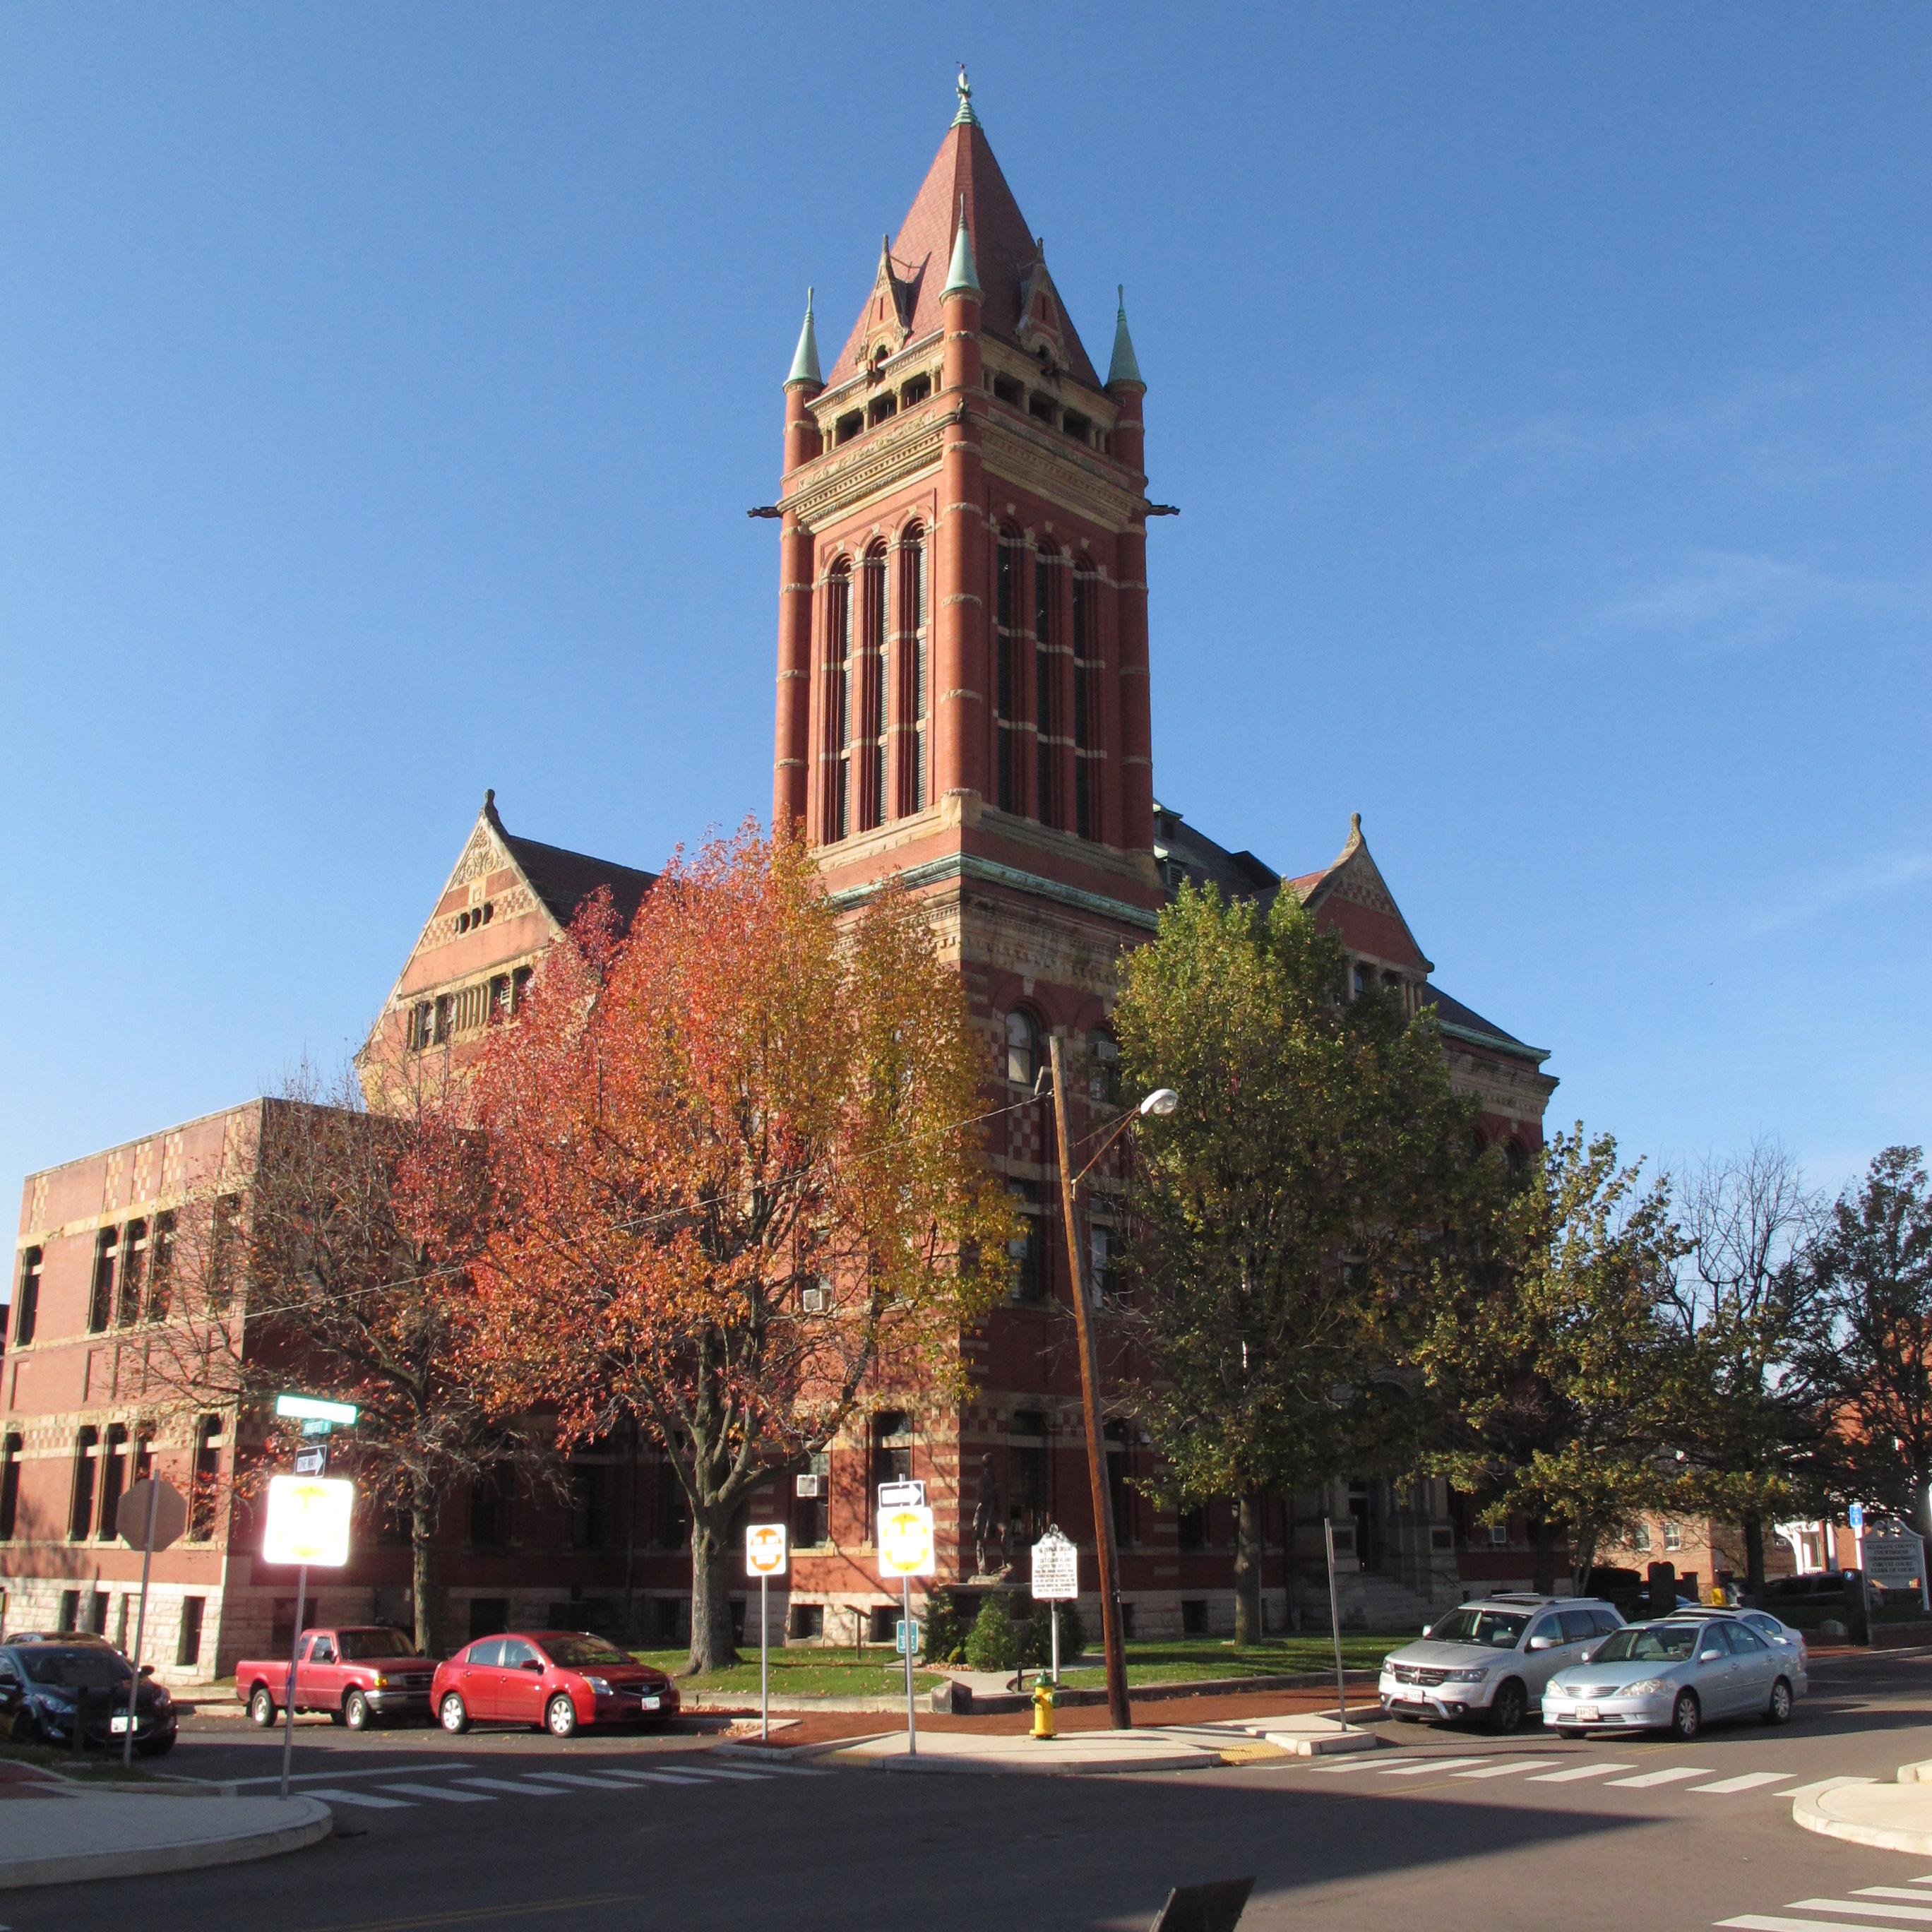 A photograph of Allegany County Courthouse in the Washington Street Historic District of Cumberland, MD.